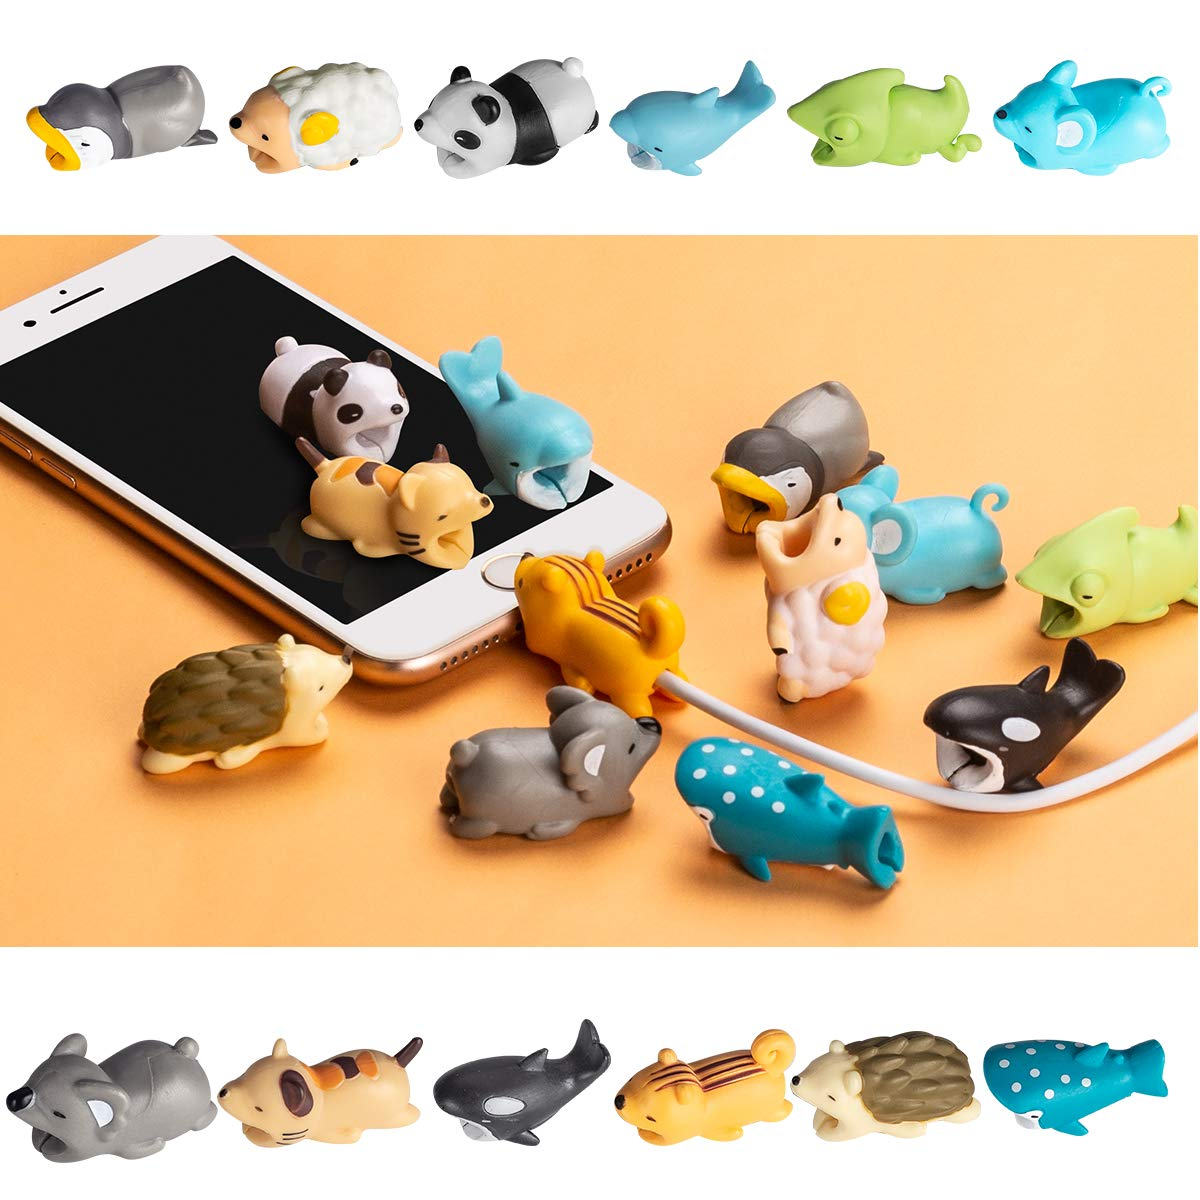 Aitsite 12 Pieces Charger Cable Protector Buddies, Cord Protector Saver with Carry Case and Animals Cable Bites for iPhone and Android Cell Phone Charging Cable by Aitsite (Image #5)